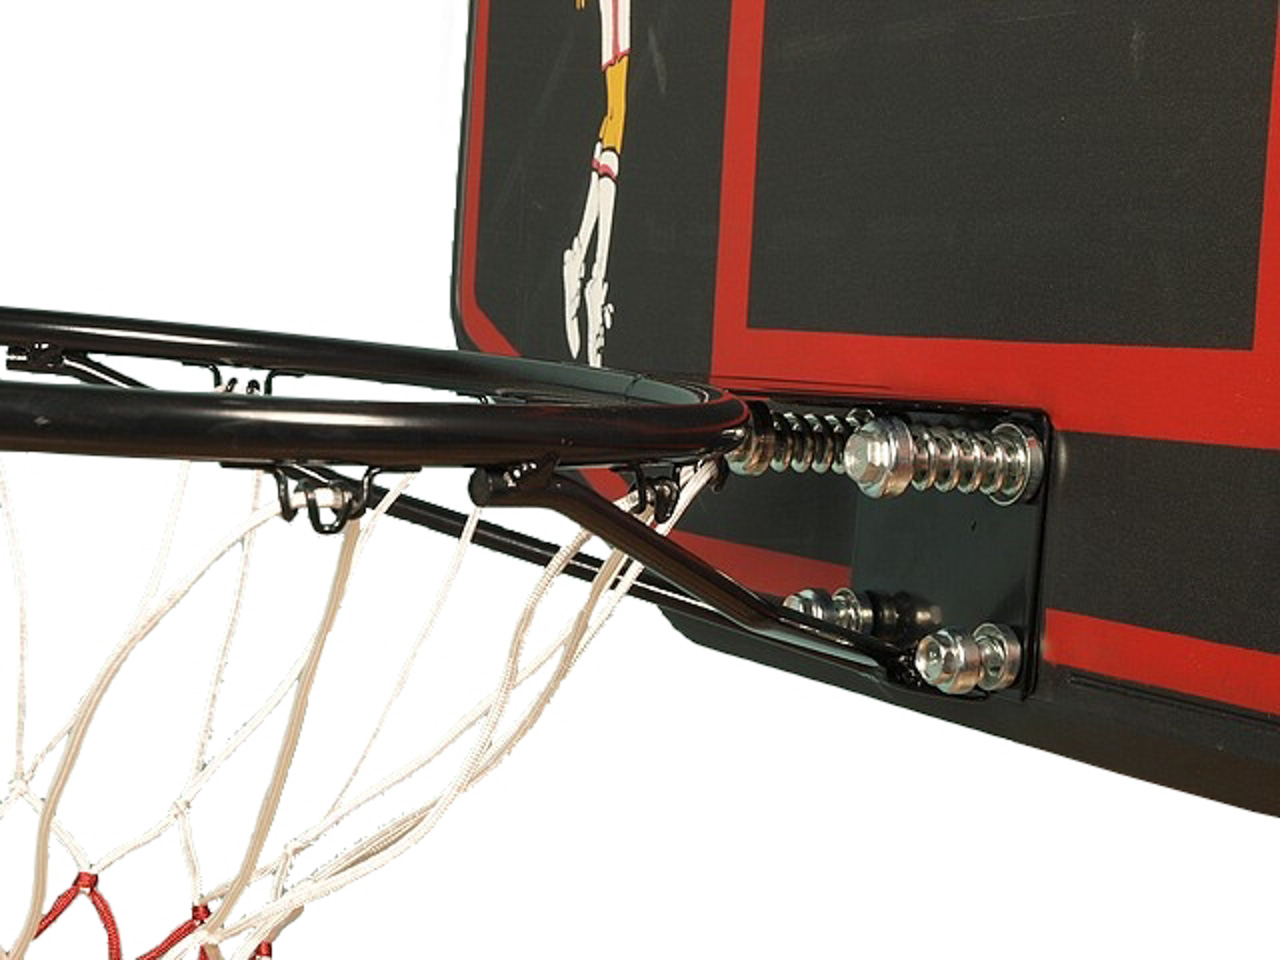 panneau de basket ball first price stand ecco 109 70 cm. Black Bedroom Furniture Sets. Home Design Ideas